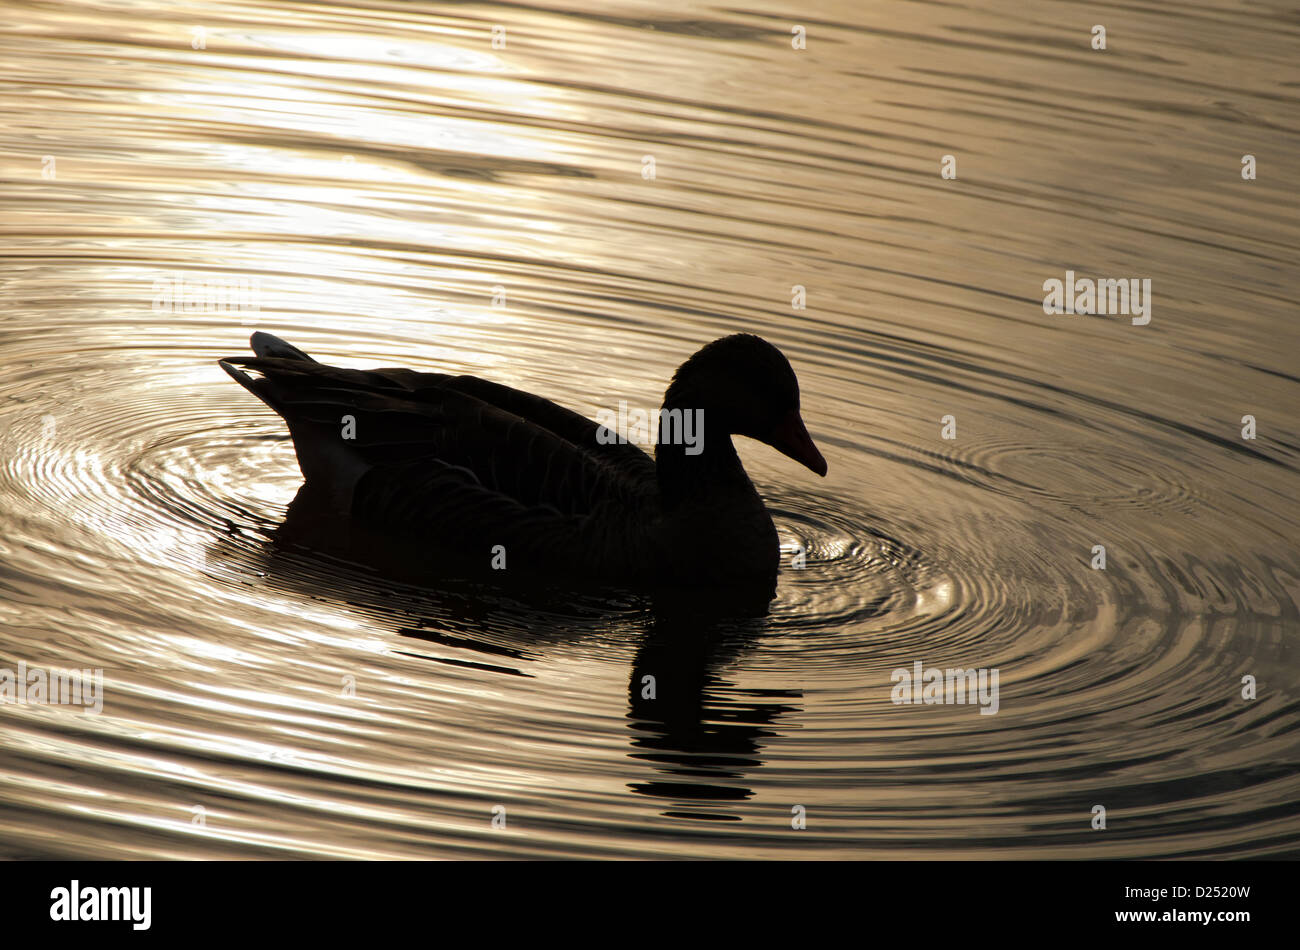 black silhouette of a duck at sunset on a lake with ripples - Stock Image